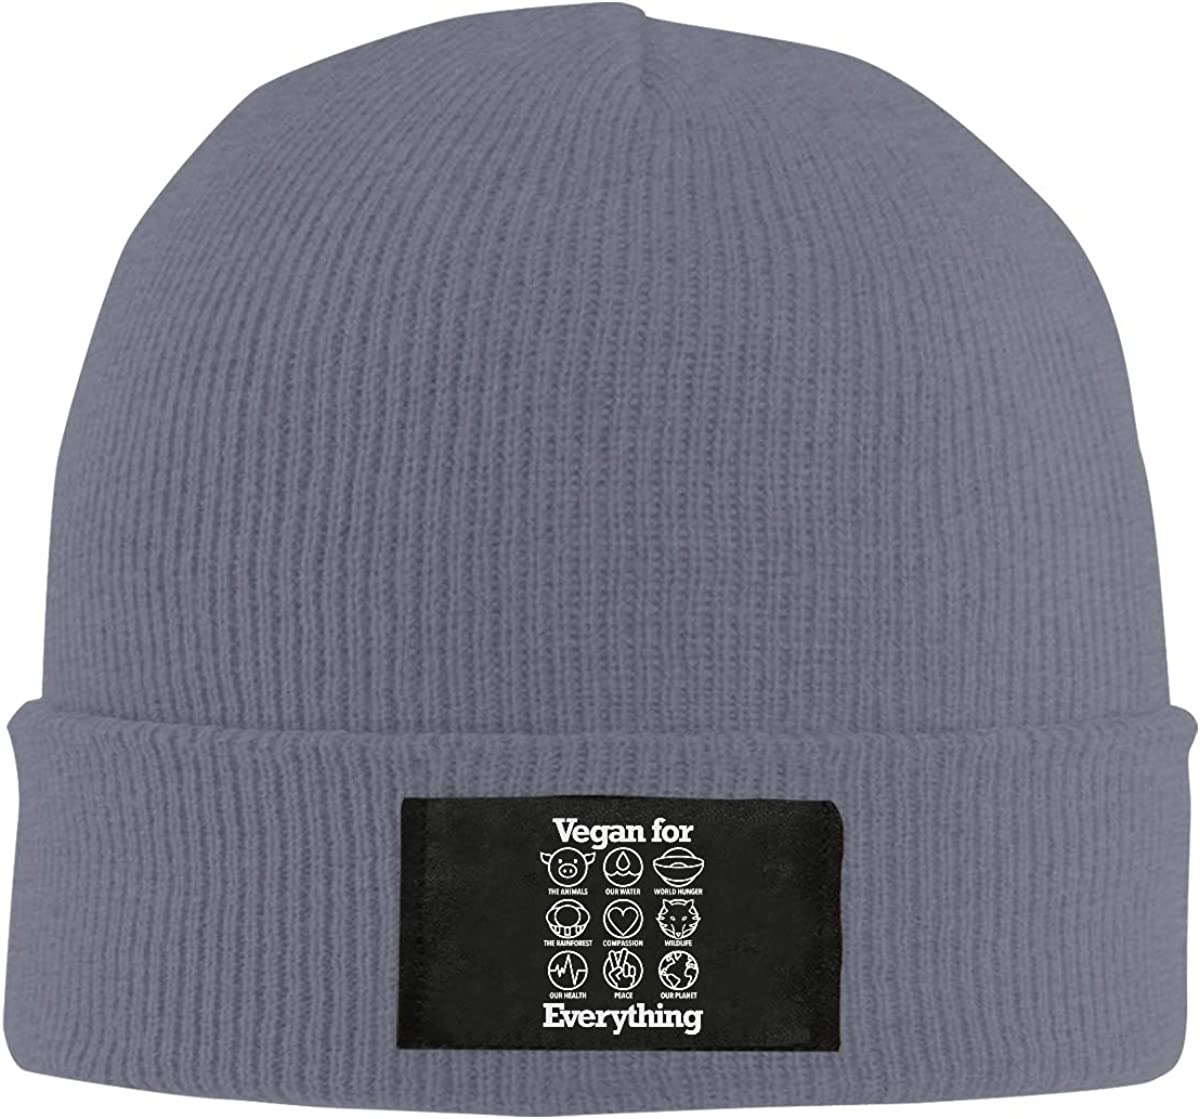 BF5Y6z/&MA Unisex Vegan for Everything Knitted Hat 100/% Acrylic Fashion Beanies Cap